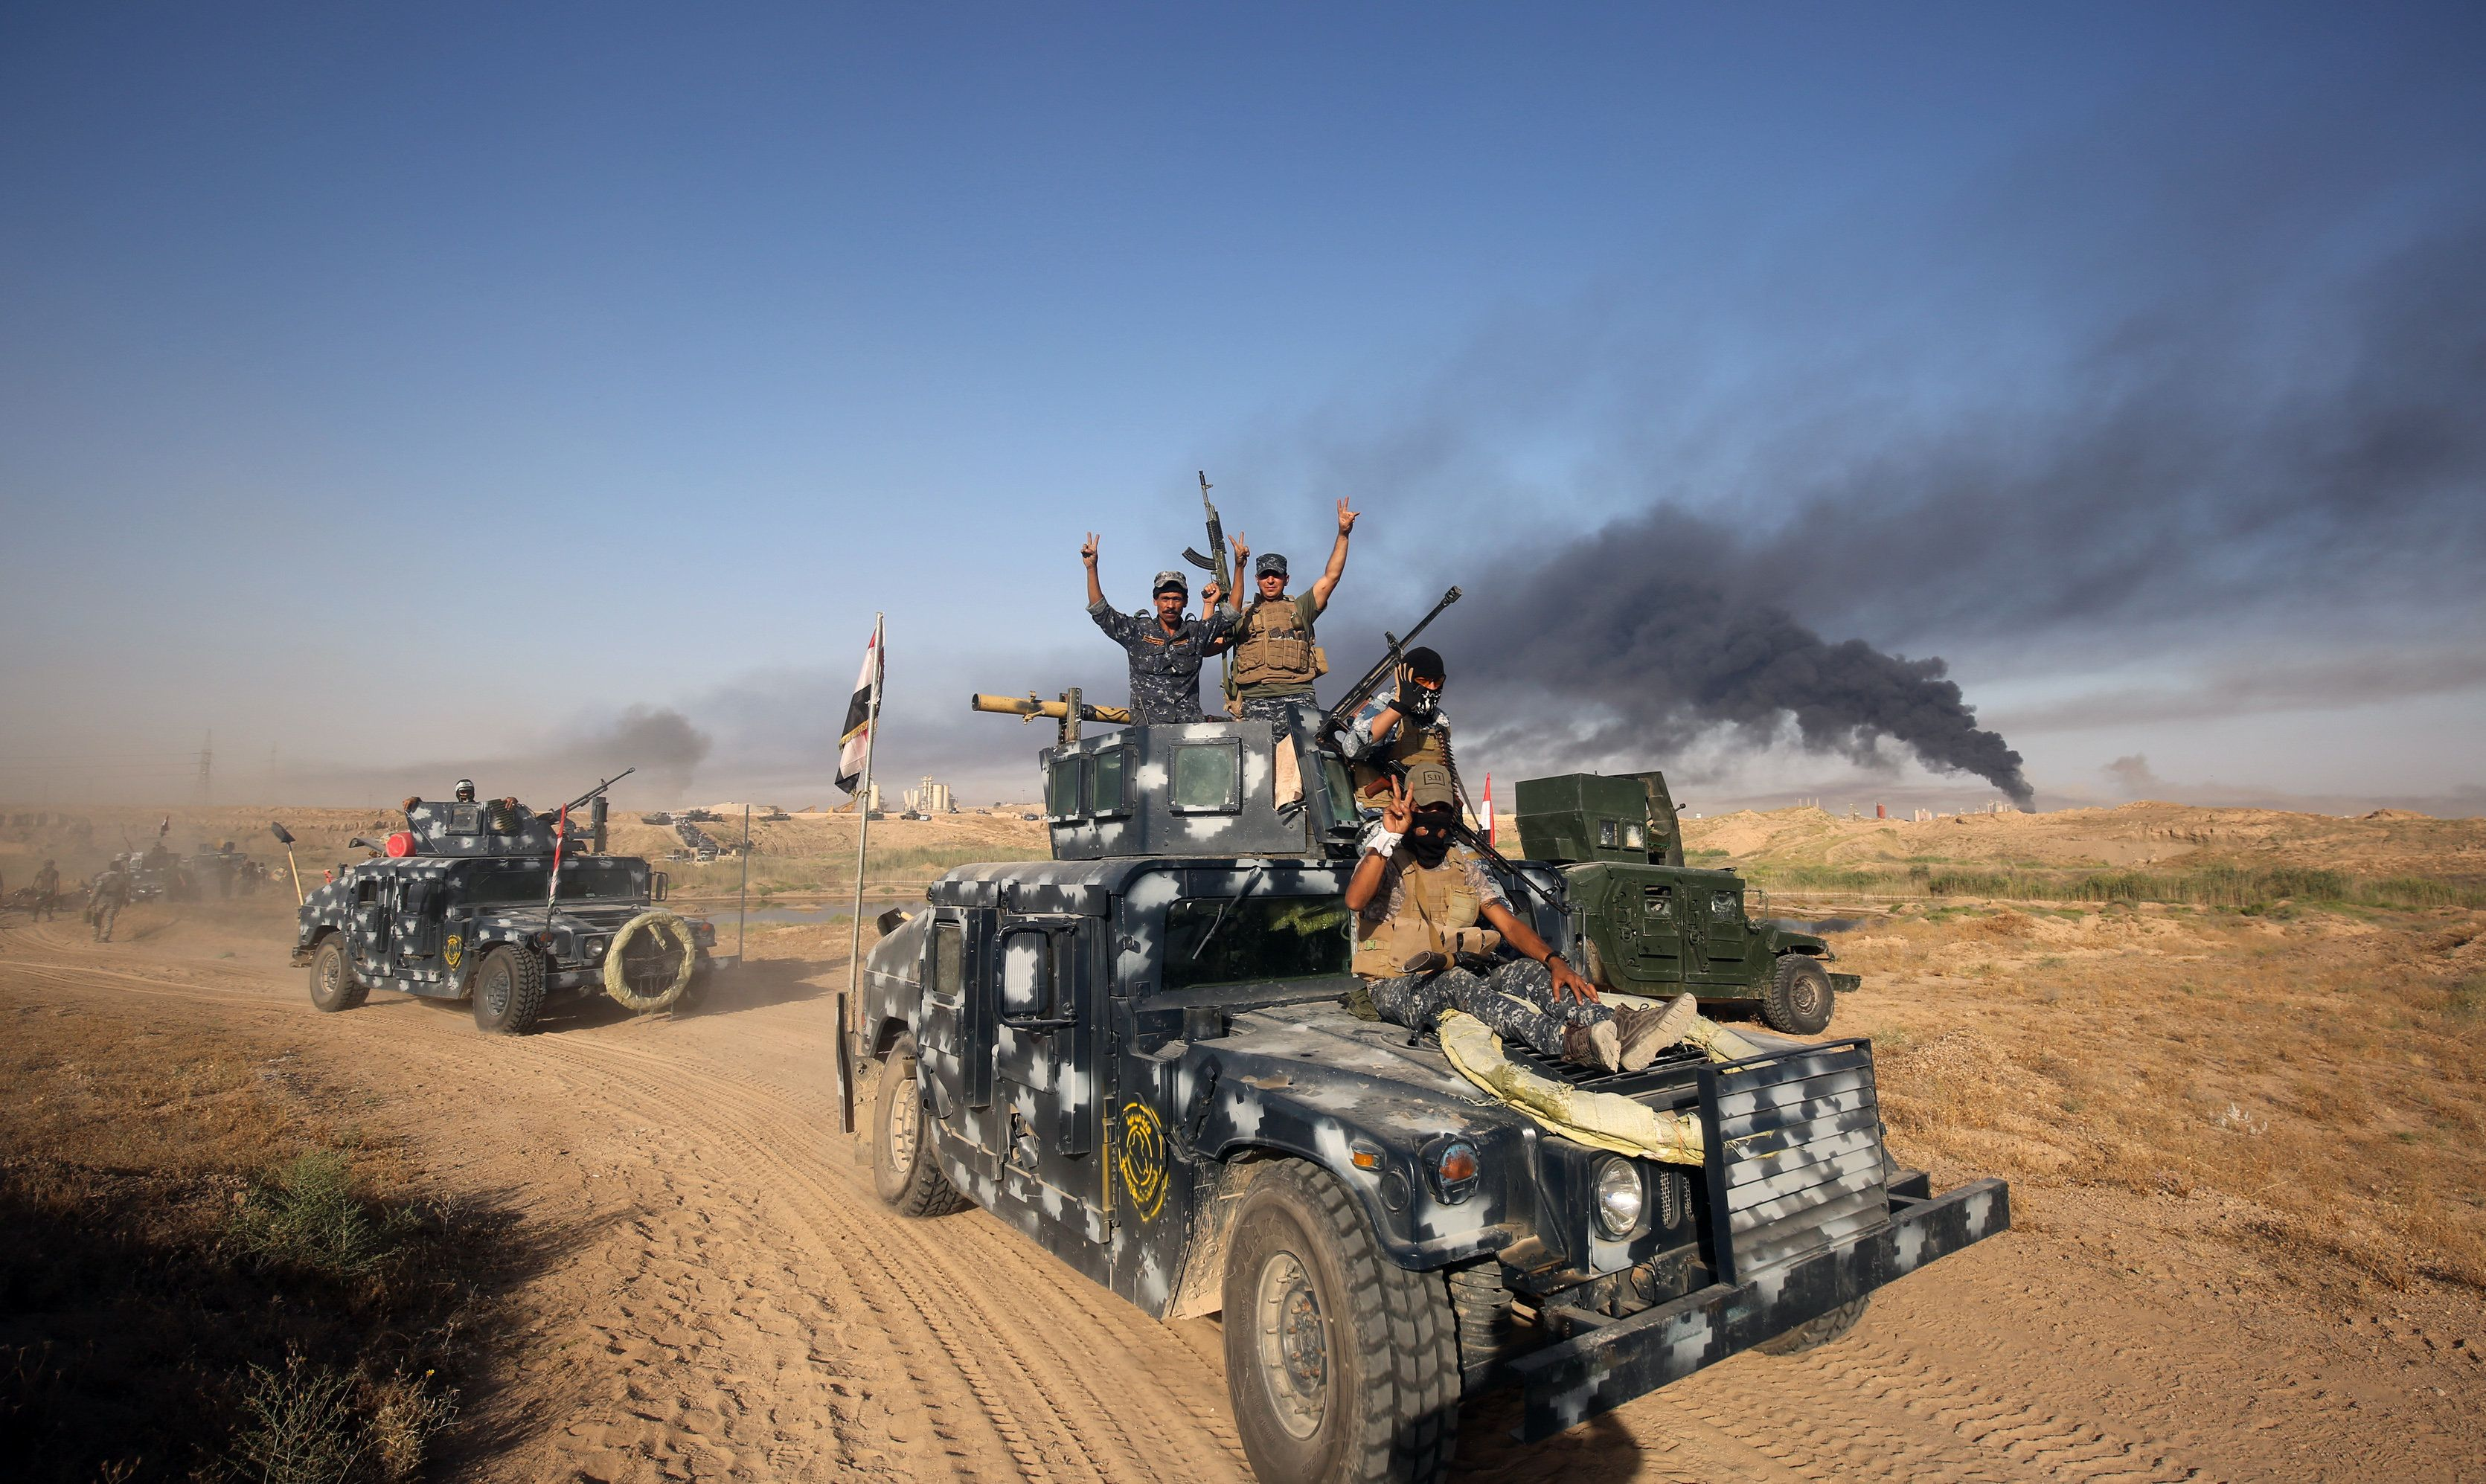 Iraqi pro-government forces advance towards the city of Falluja as part of a major assault to retake the city from ISIS.